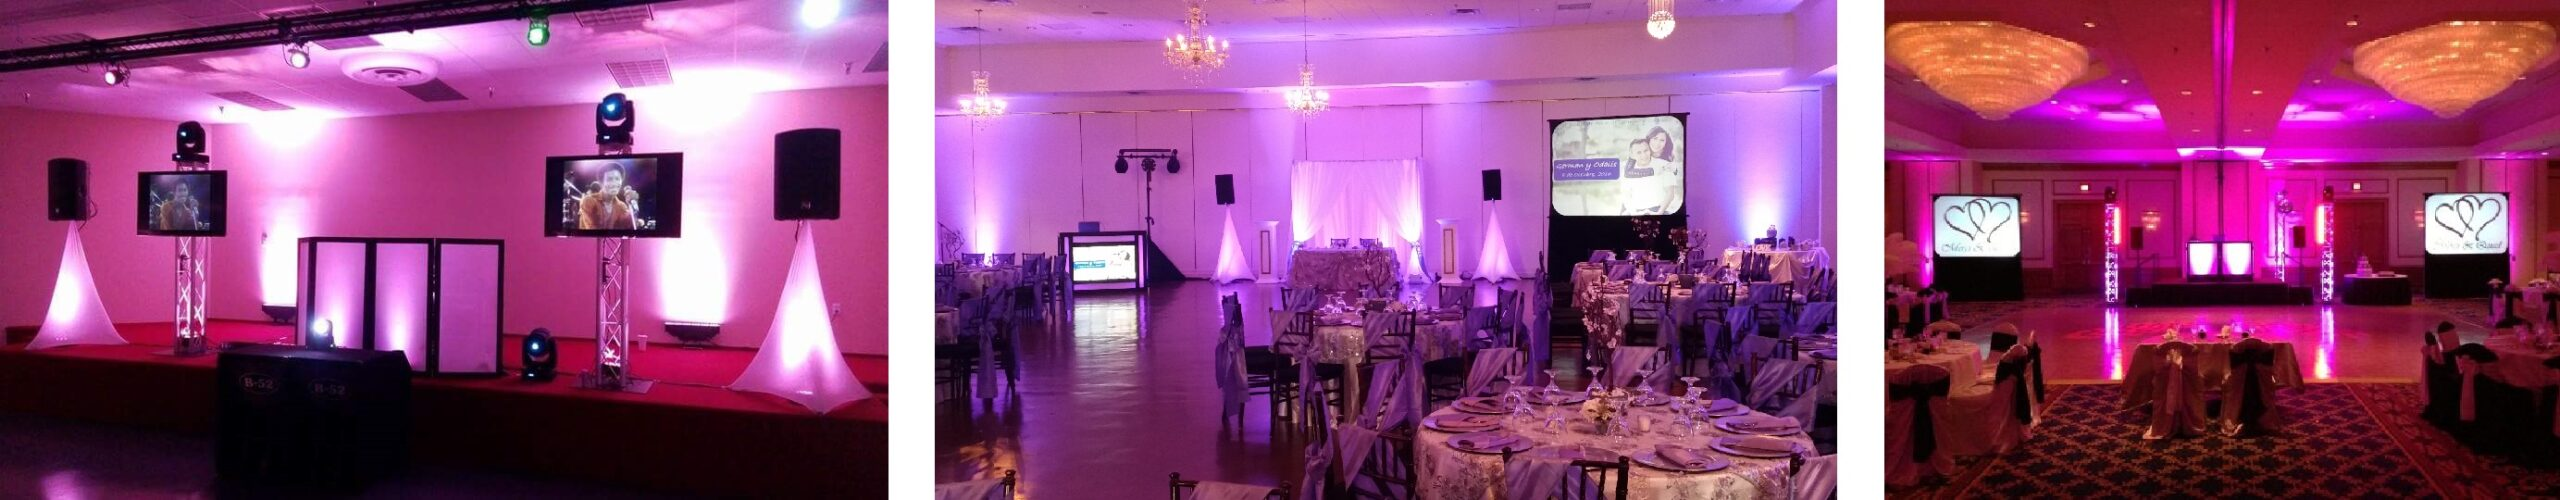 Houston Weddings, Weddings in Houston, Houston Audio Visual, Video Projection, Rear Screen Projection, Flat Screen TVs, Up lights, Awesome Music Entertainment, Awesome Event Pros, Awesome Lighting Decor, AME DJs, Sonido DJ Sammy de Houston